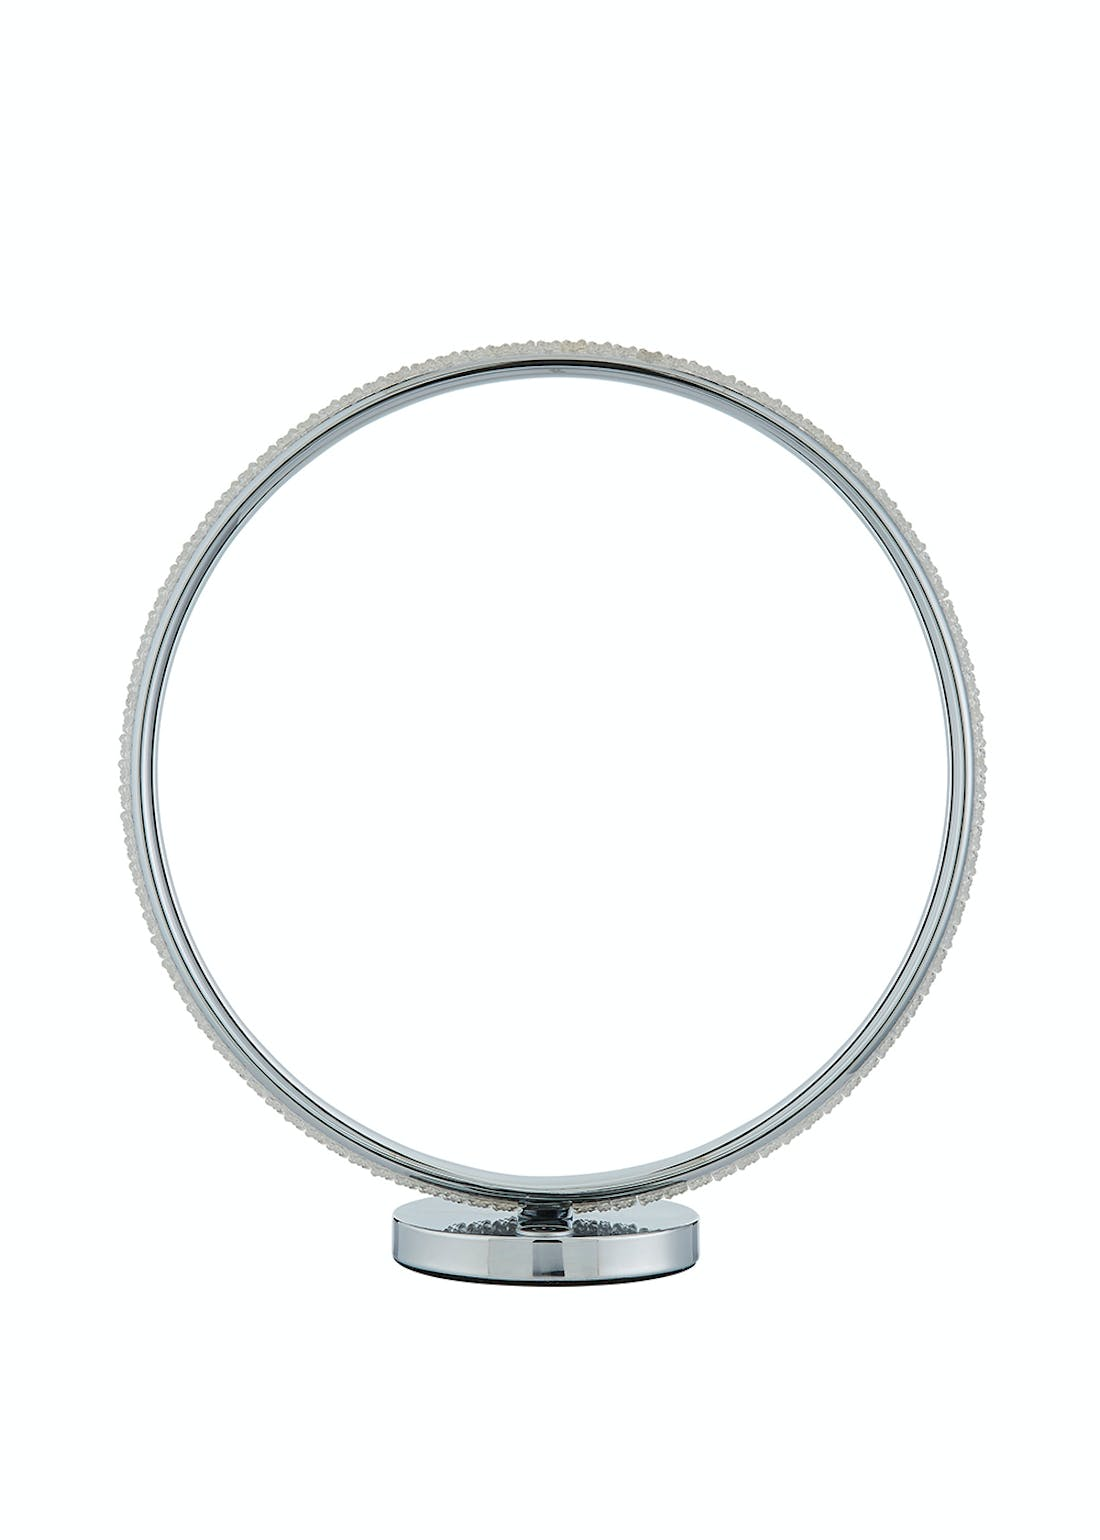 LED Ring Table Lamp (H36.5cm x W35cm x D13cm)